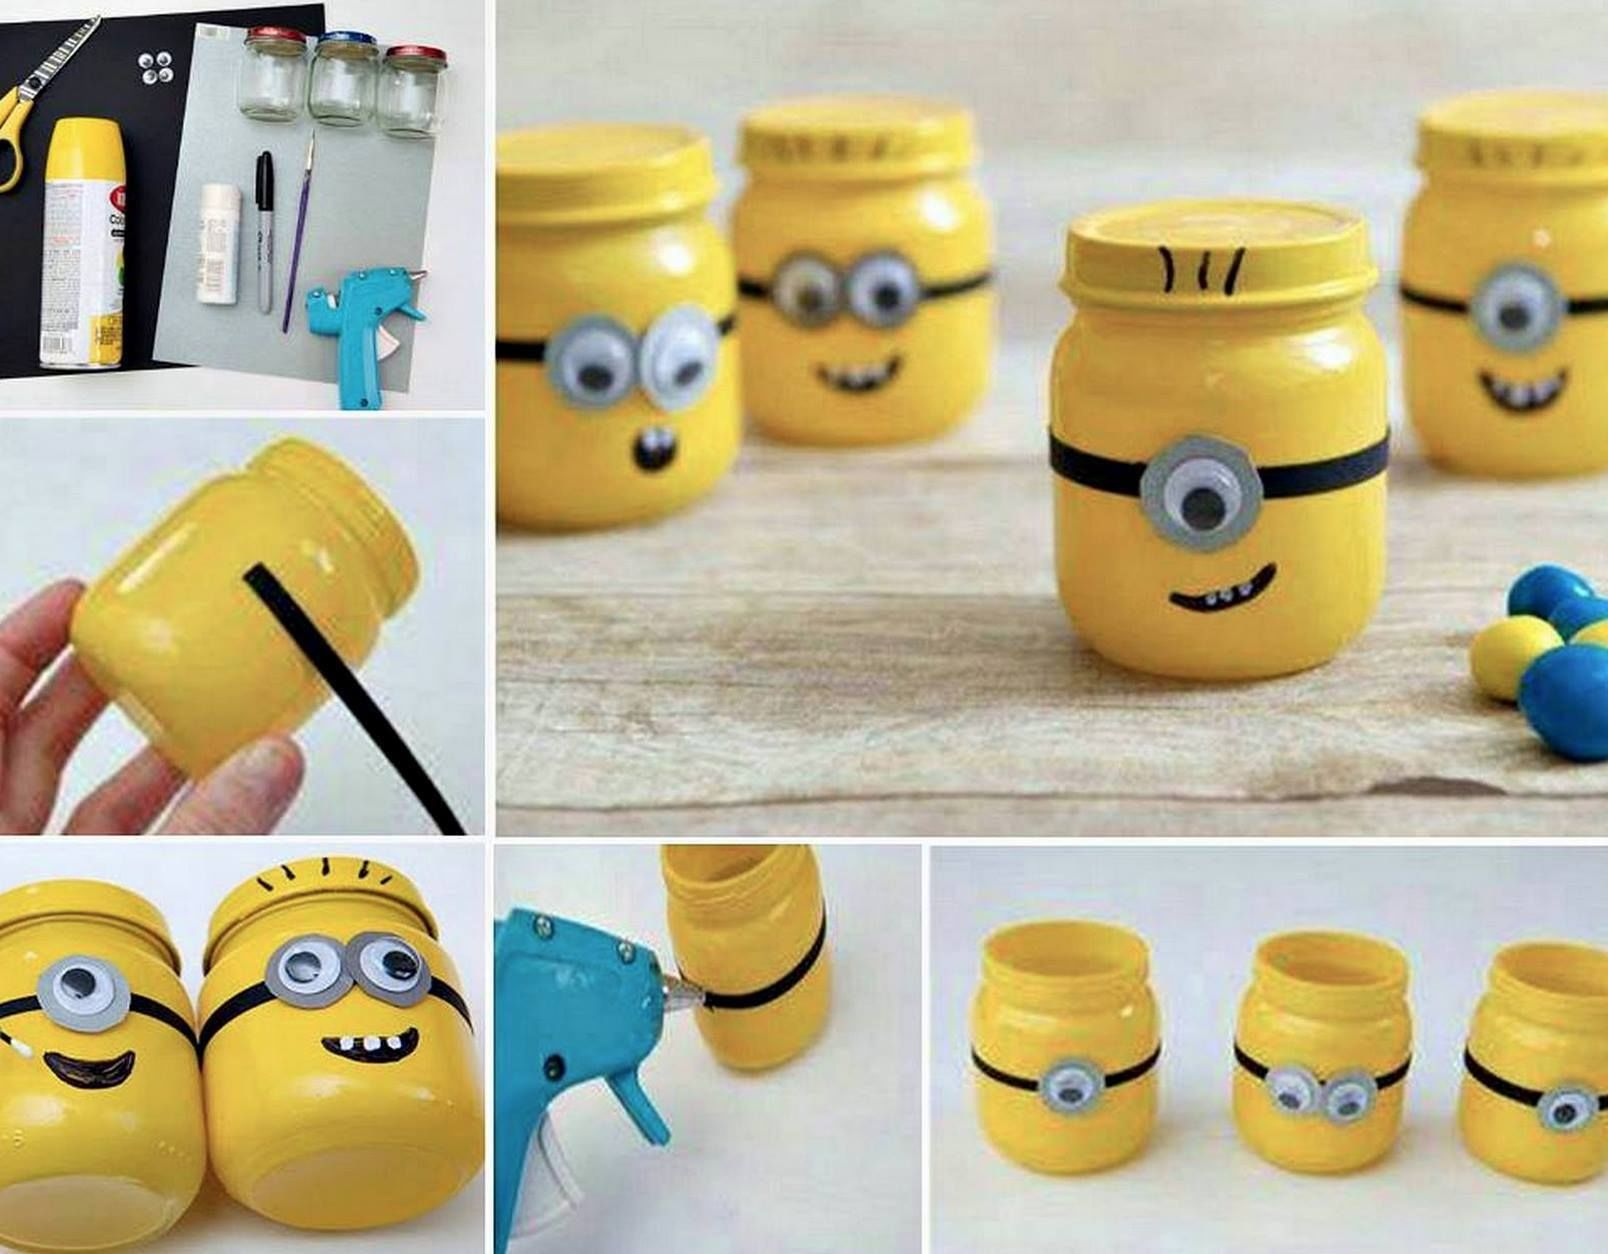 Diy minion jars pictures photos and images for facebook tumblr diy minion jars solutioingenieria Gallery